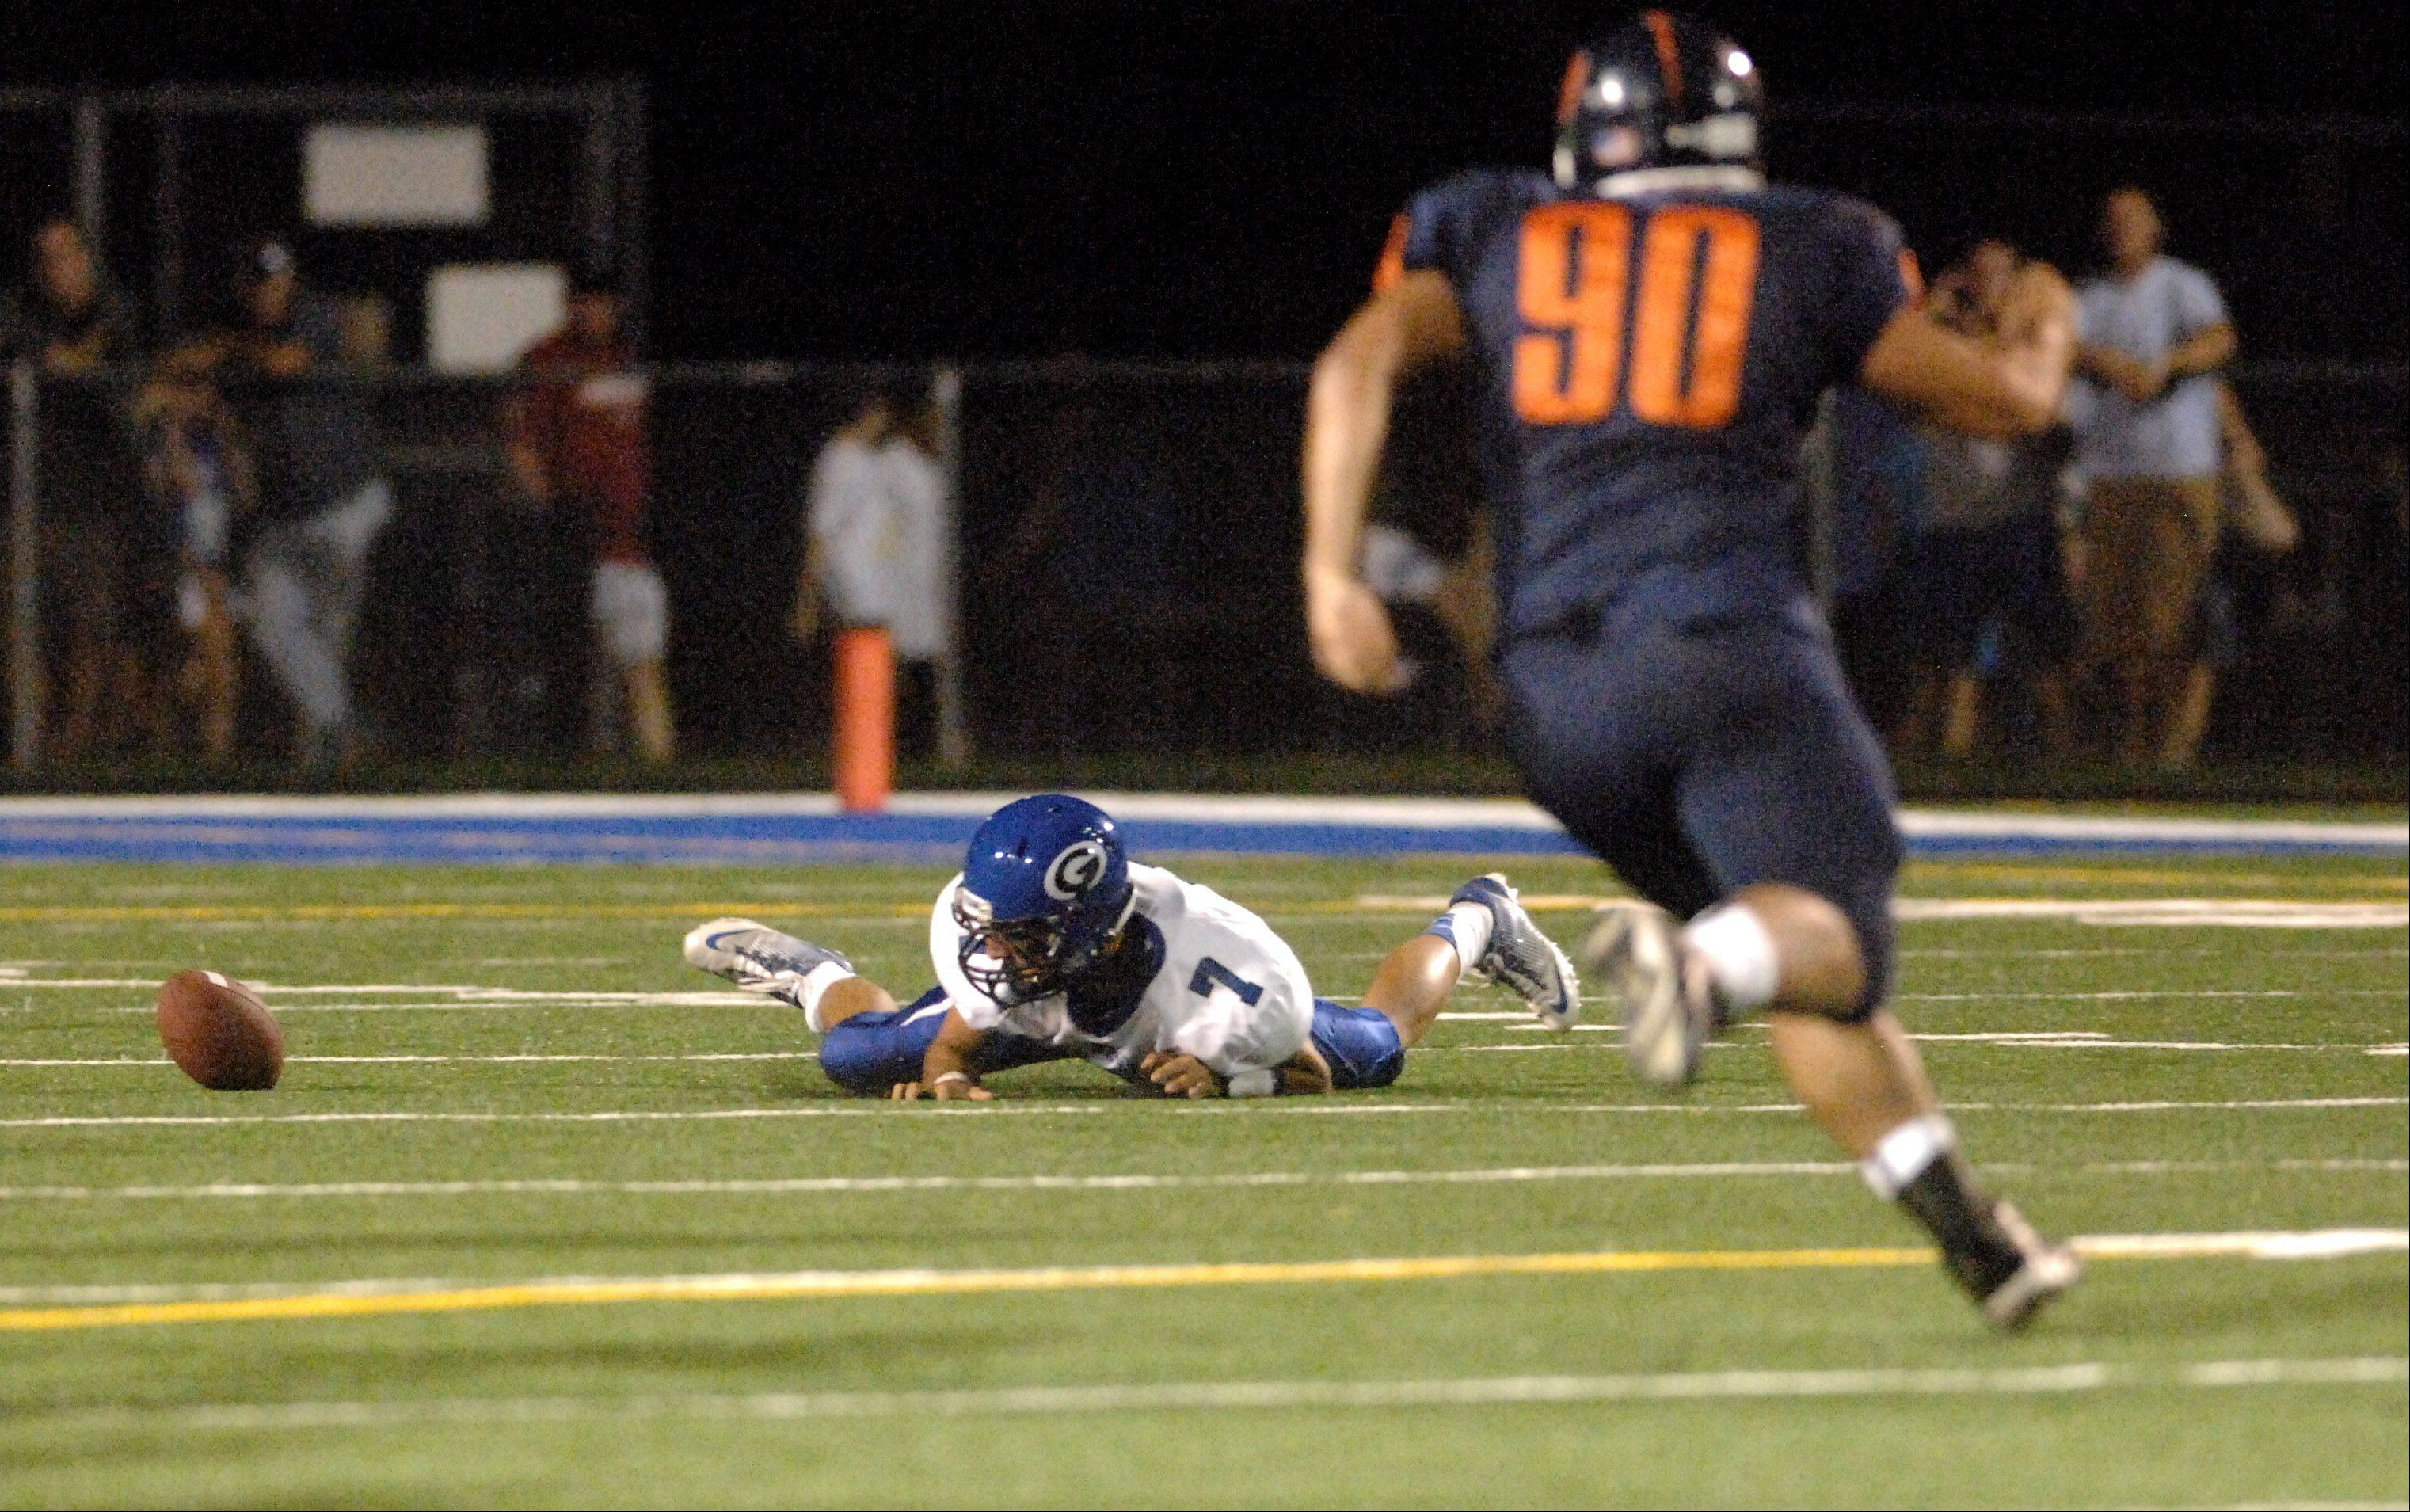 Geneva's Daniel Santacaterina loses the ball after a snap on a punt, one of six first-half fumbles by the Vikings.